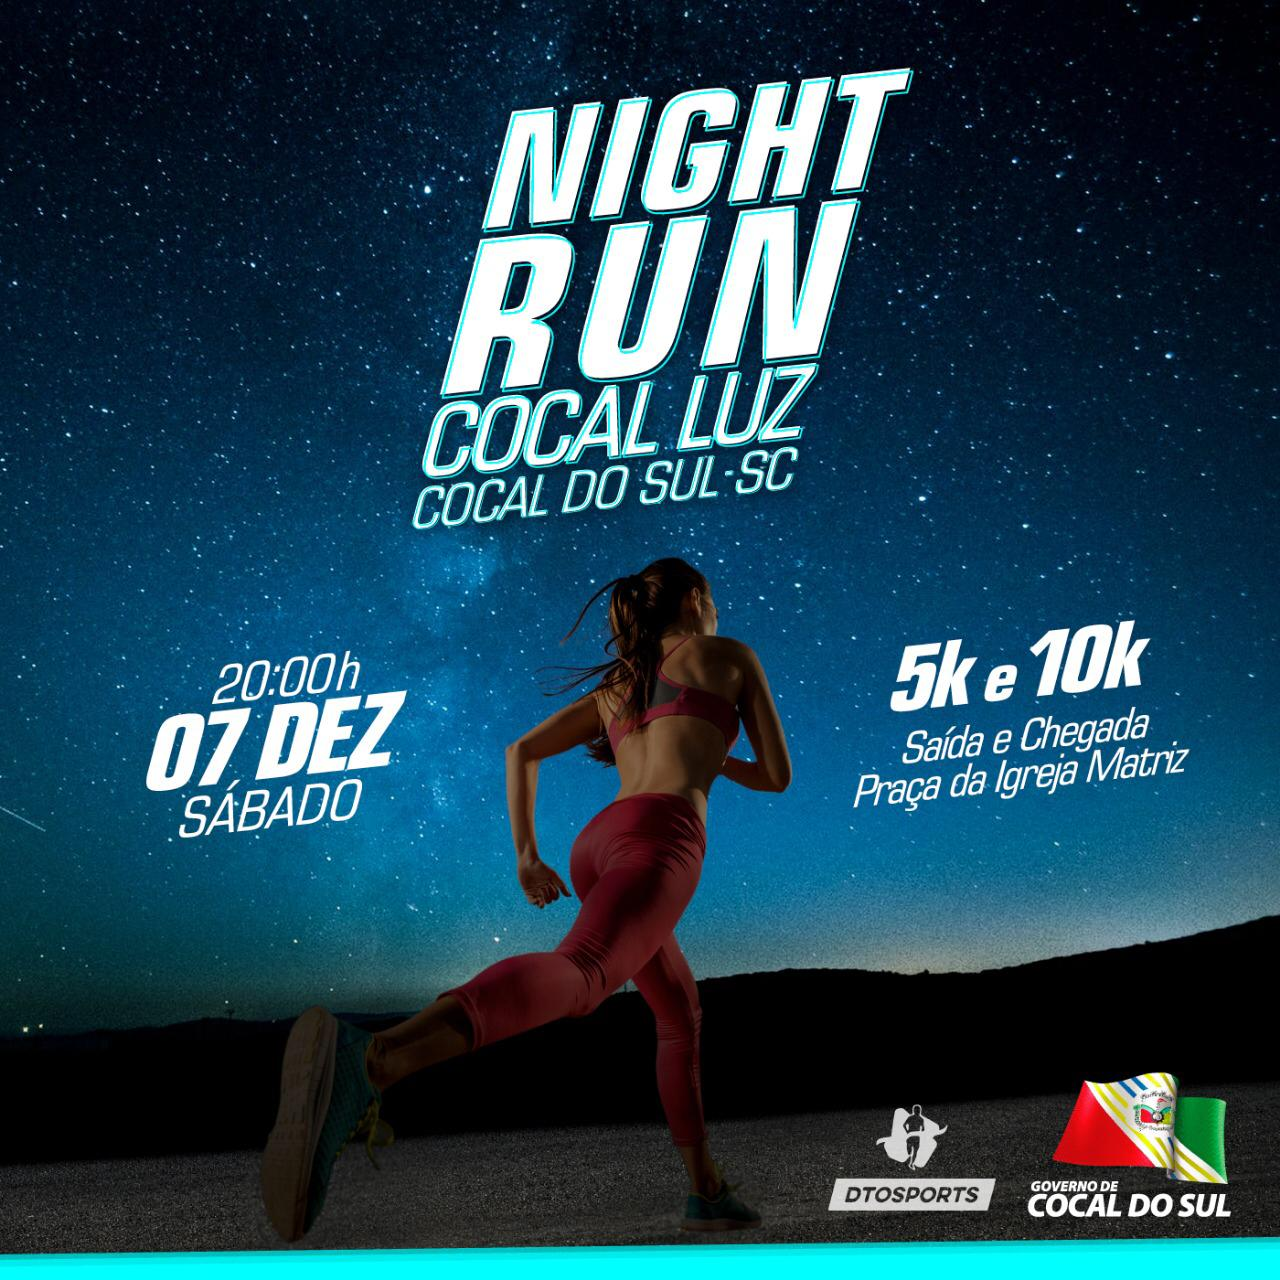 Night Run Cocal Luz: corrida irá unir esporte com a magia no Natal